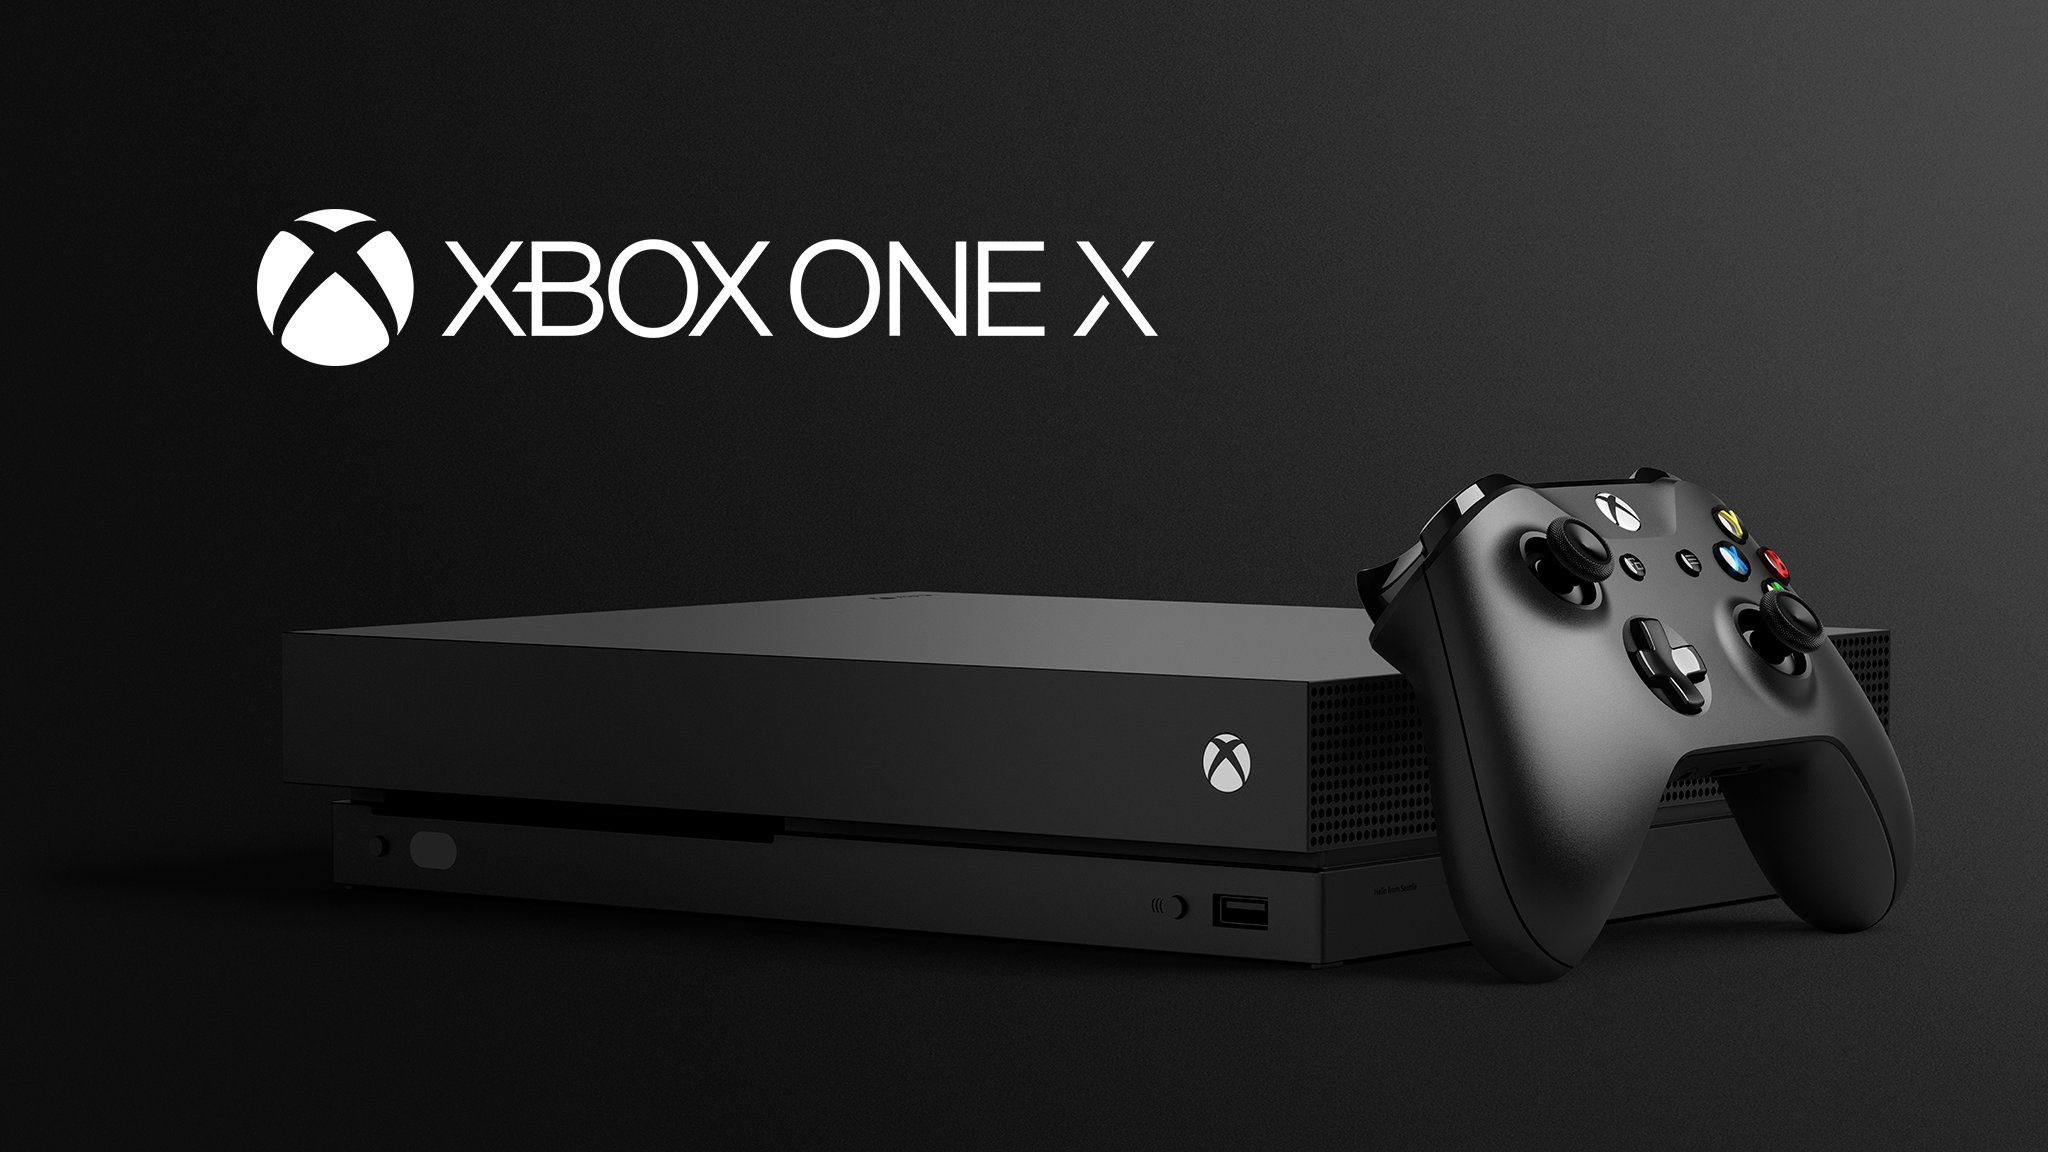 Here's How You'll Upgrade Games To 4K On The Xbox One X